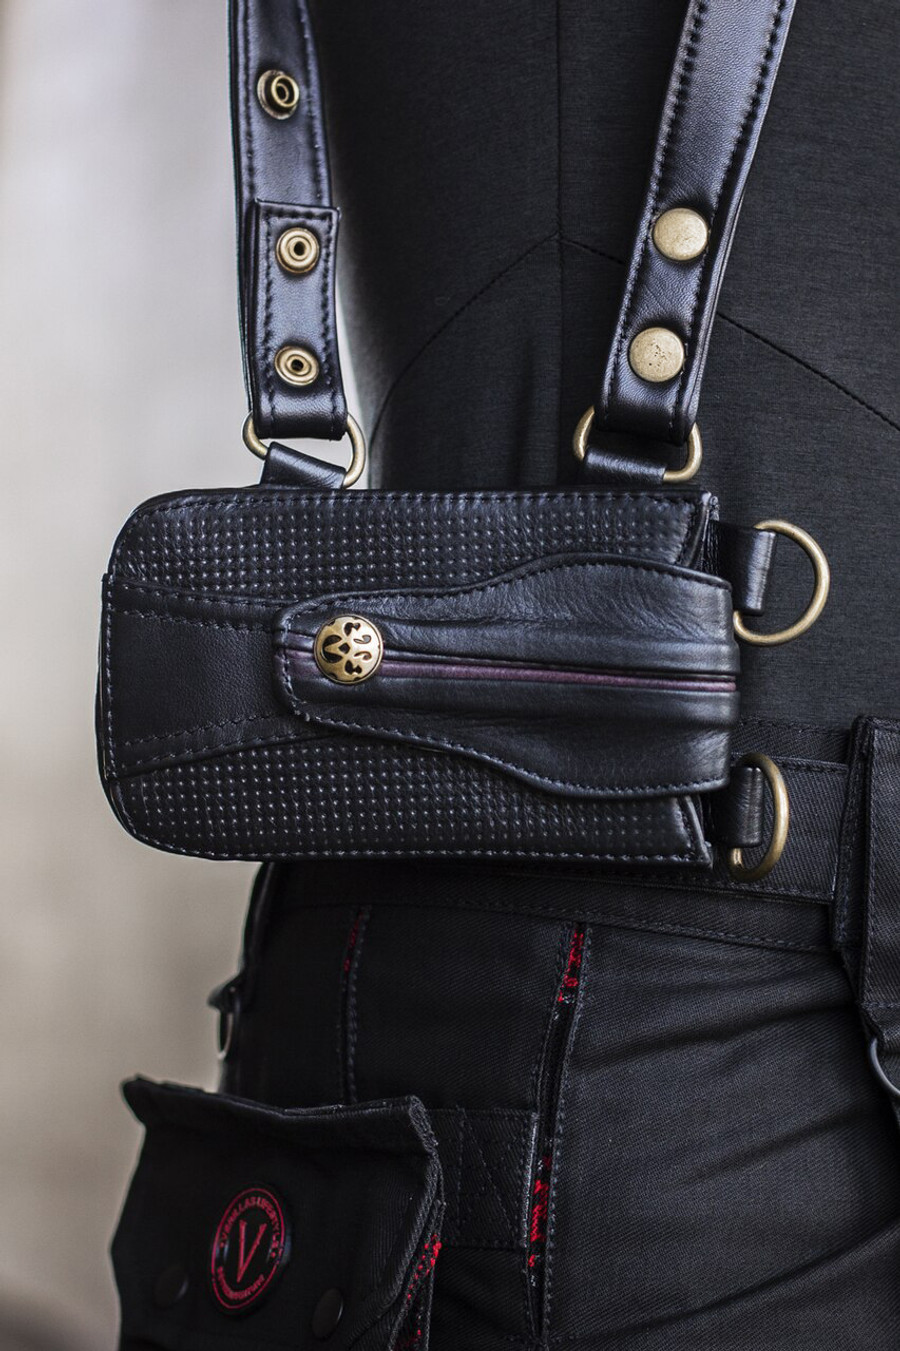 Leather Versatta Phone Pocket in Black w/ Giant's Blood attached to a Versatta Phone and Wallet Holster